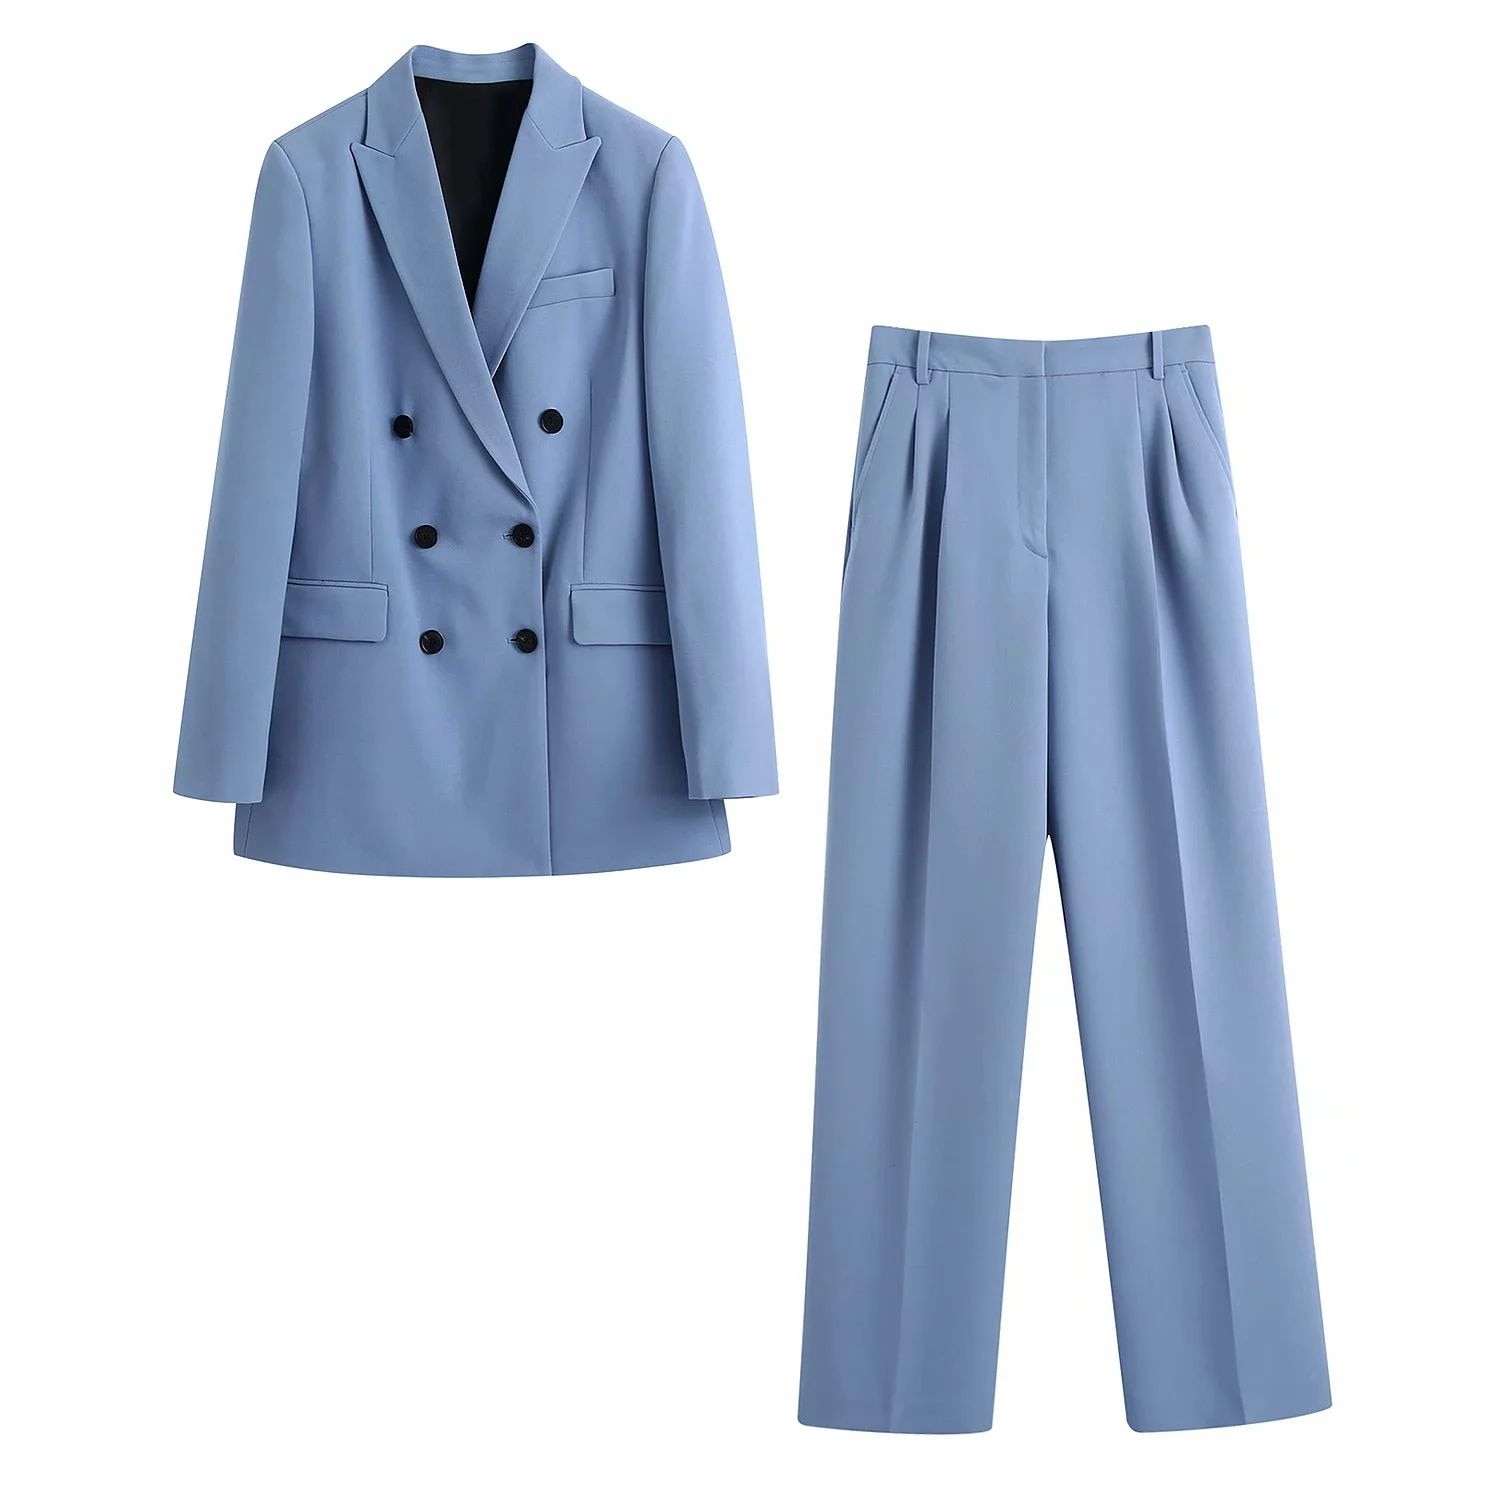 2021 New Women 2 piece set suit Double breasted Blazer and Trousers Elegant High Fashion Chic Lady Woman blazer Outfits